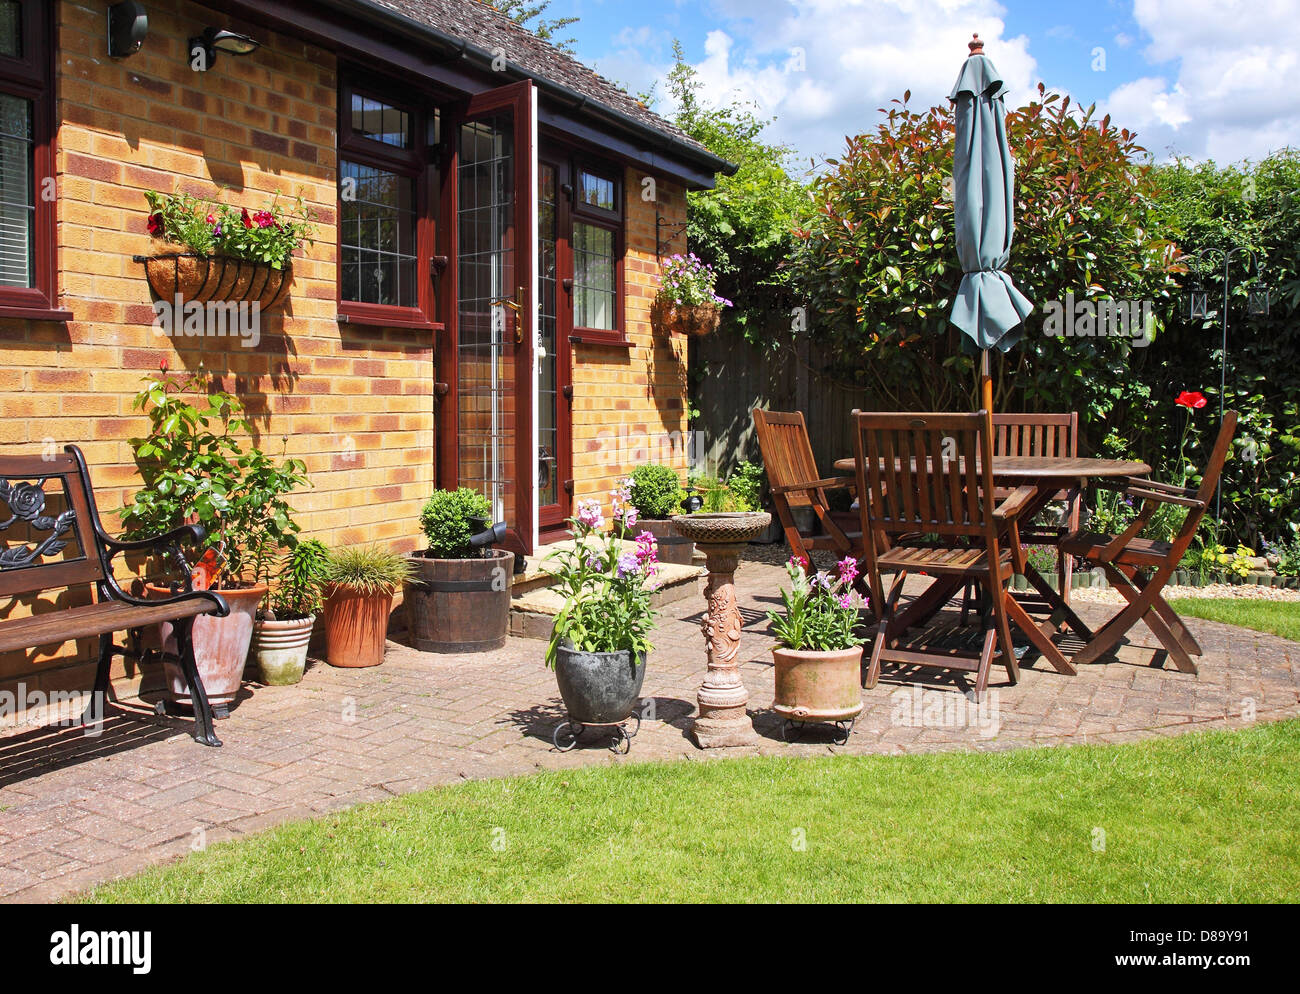 An English Back Garden Scene With Patio, Seating Area And Flowerpots    Stock Image